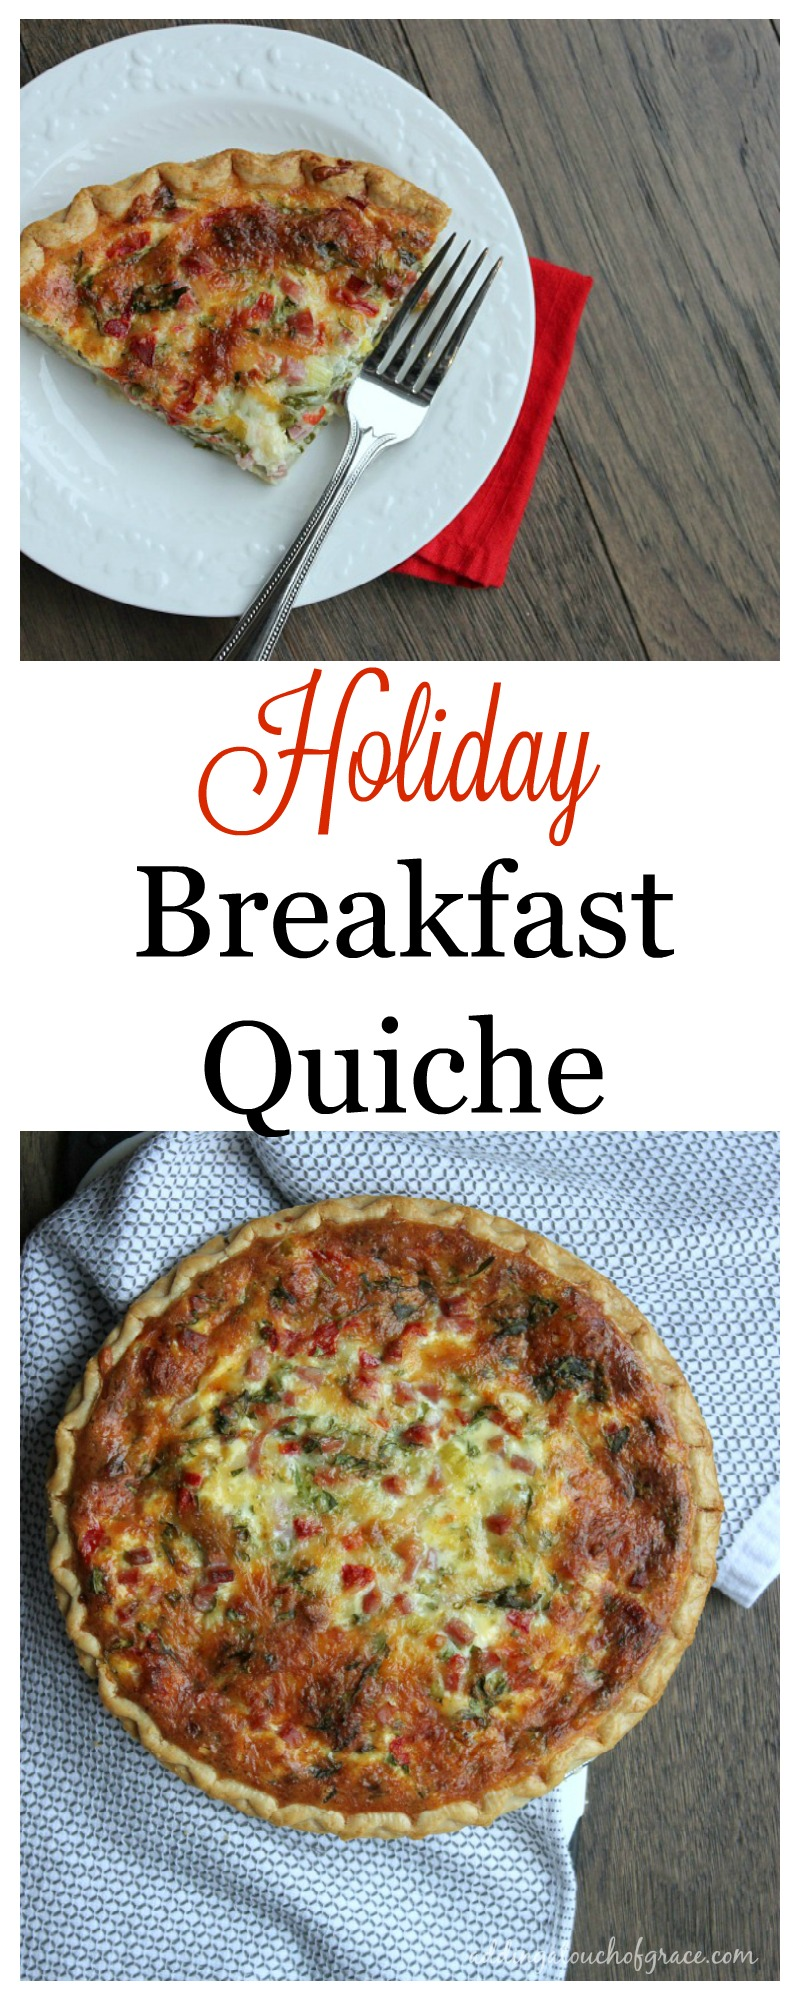 This holiday breakfast quiche is so tasty and so easy to make, you'll never need another quiche recipe.